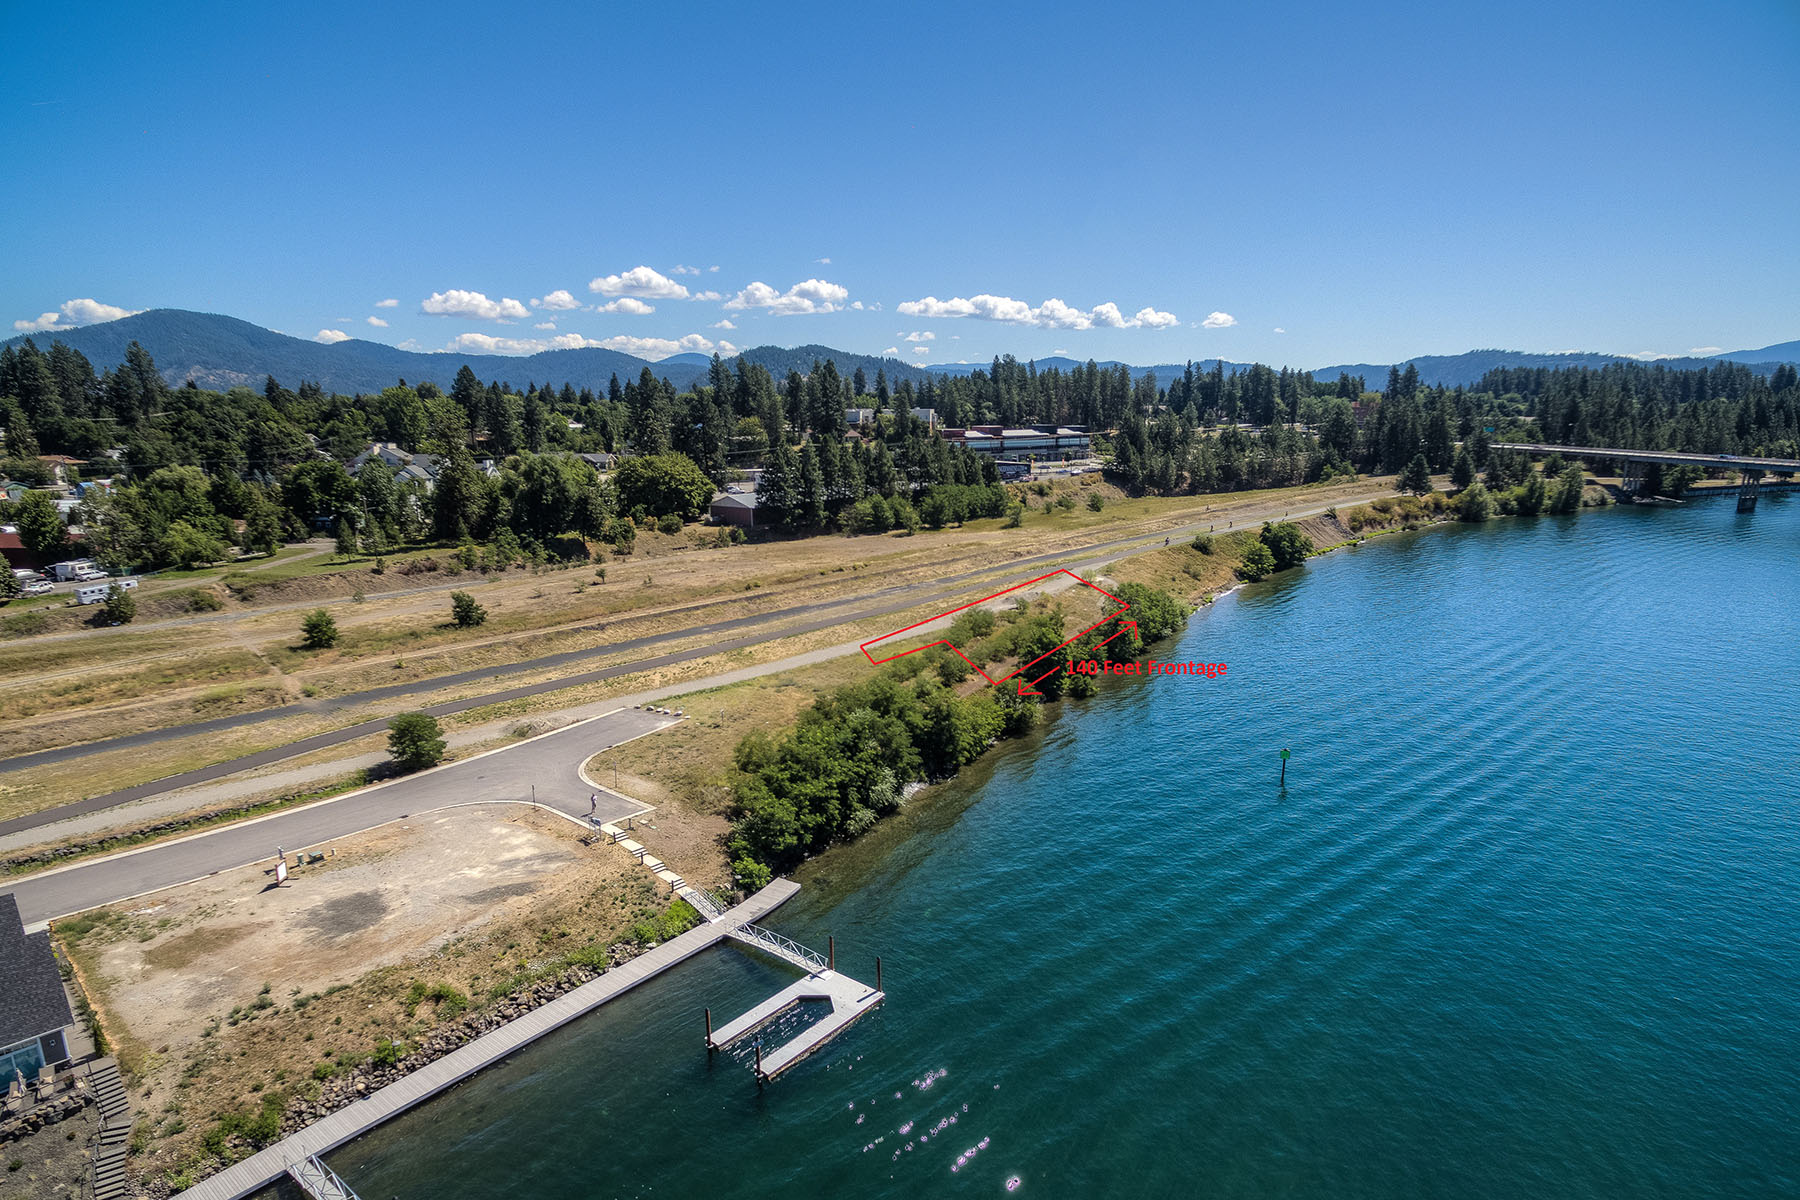 Land for Sale at Stunning Homesite with 140' River Frontage Lot 2 Blk 1 Bellerive 6th Addition Coeur D Alene, Idaho, 83814 United States